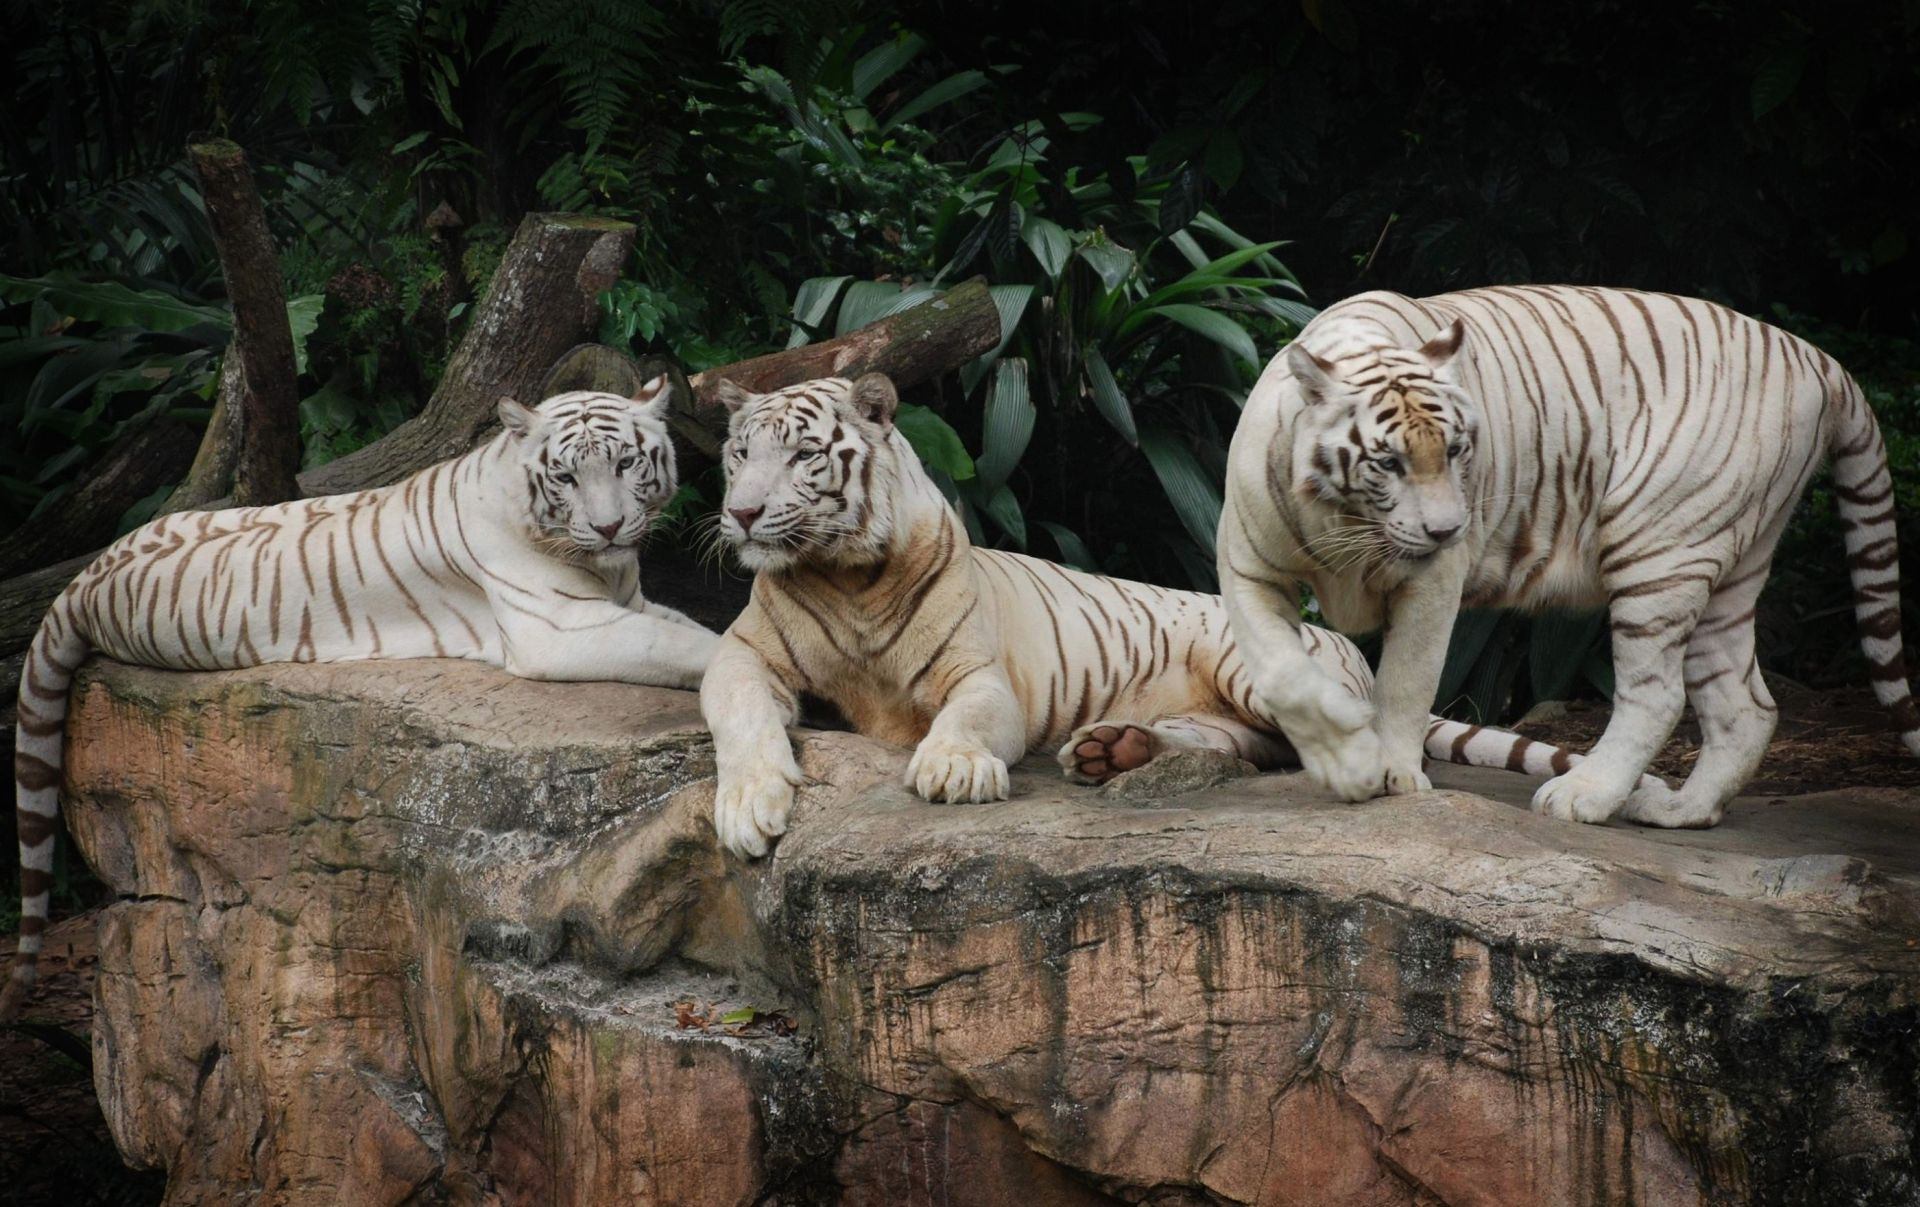 Three tigers are resting on the stone, Free Wallpaper and Background